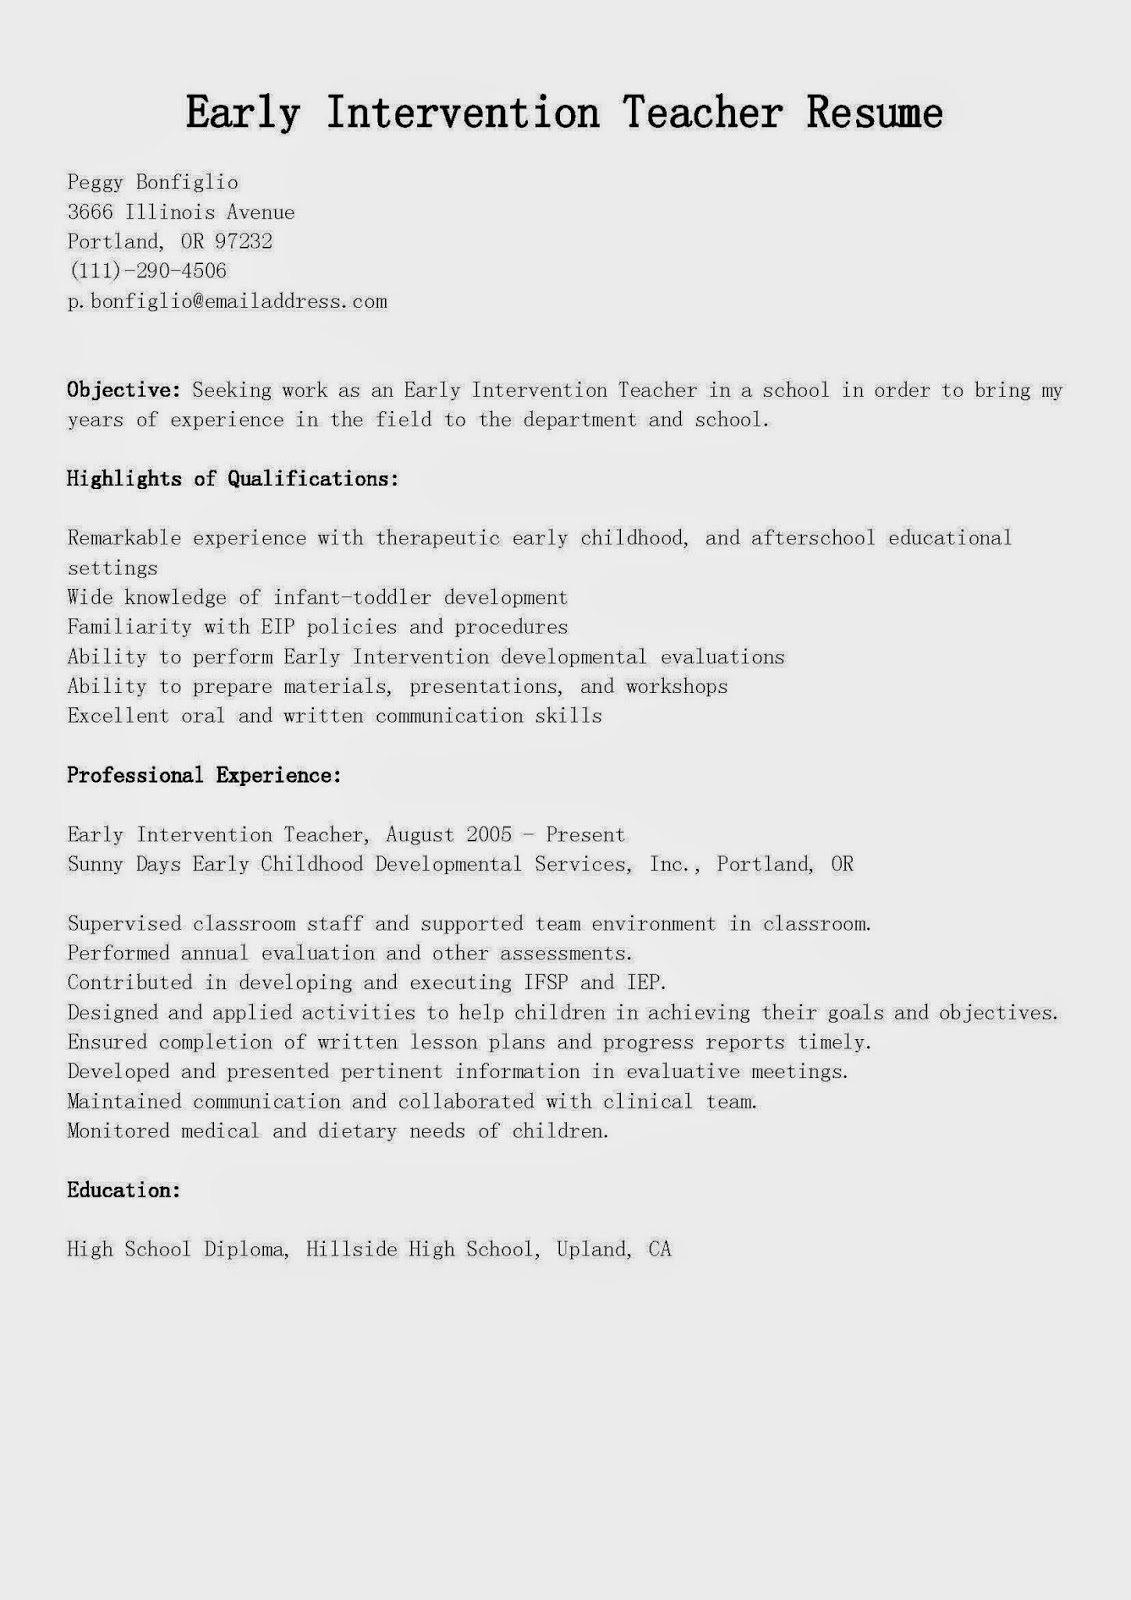 Resume Samples Early Intervention Teacher Resume Sample